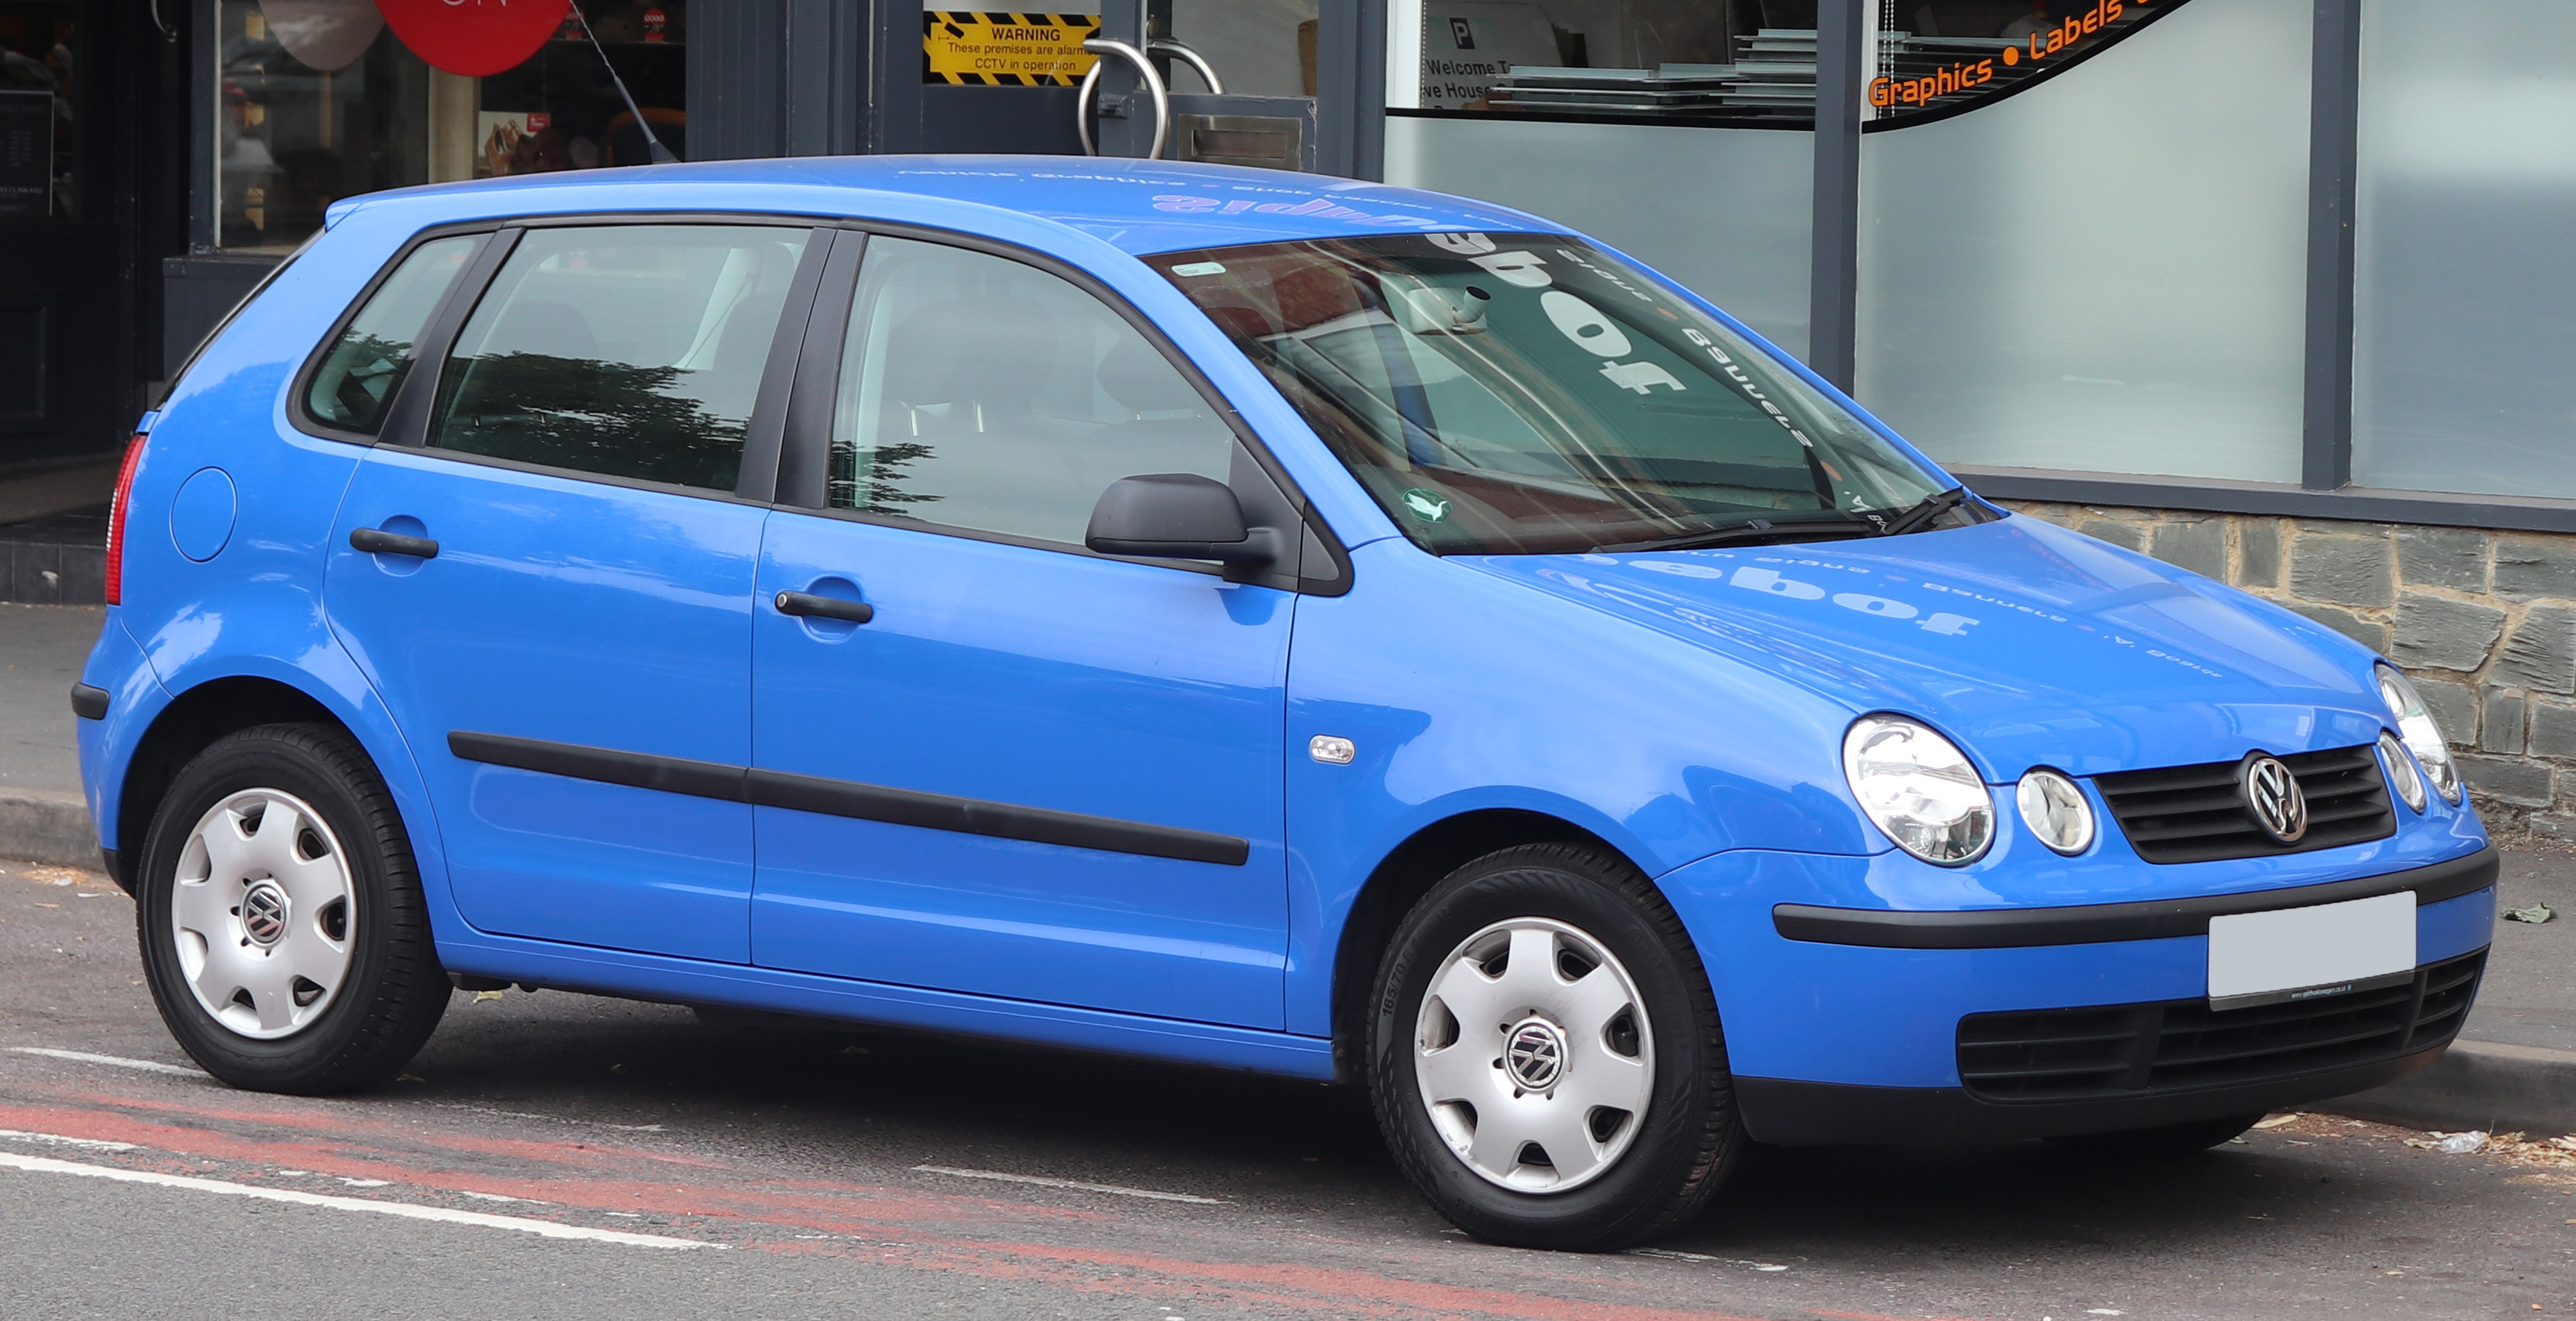 Volkswagen Polo Mk4 Wikiwand